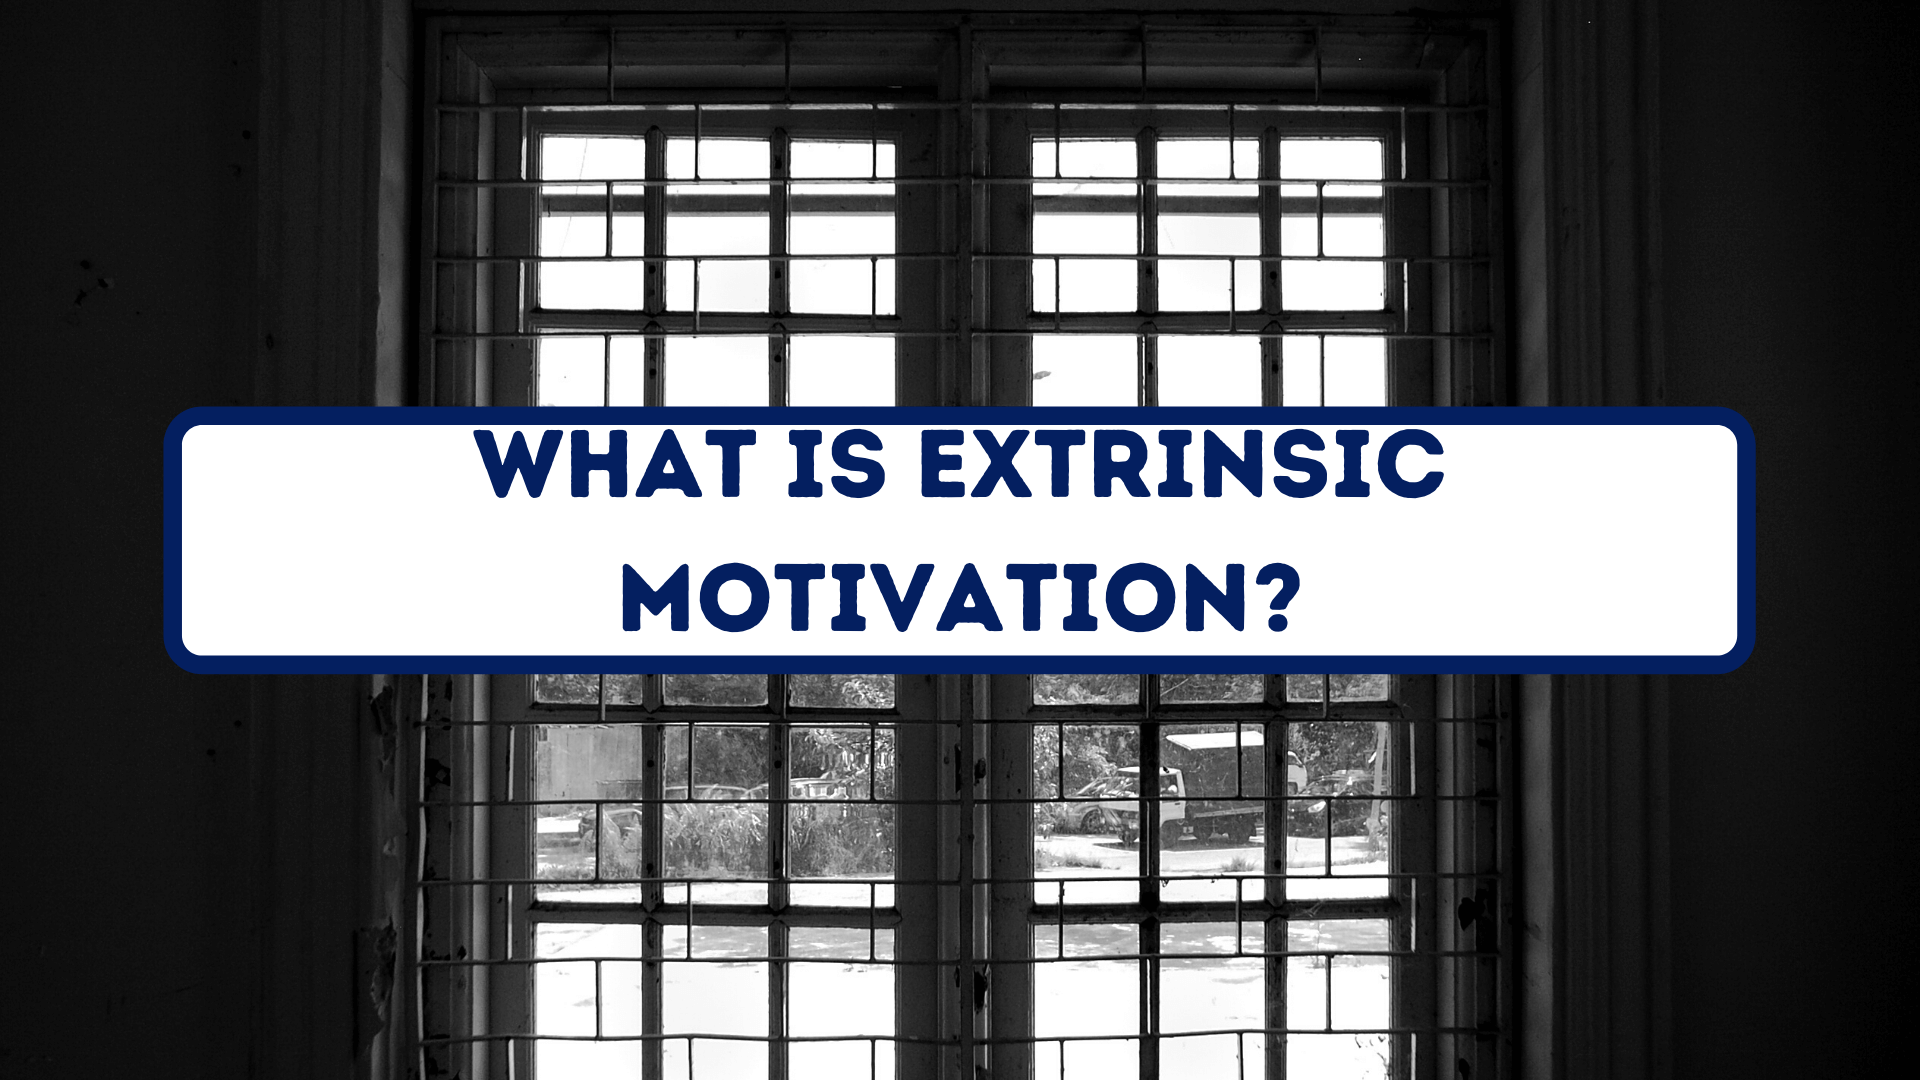 What Is Extrinsic Motivation